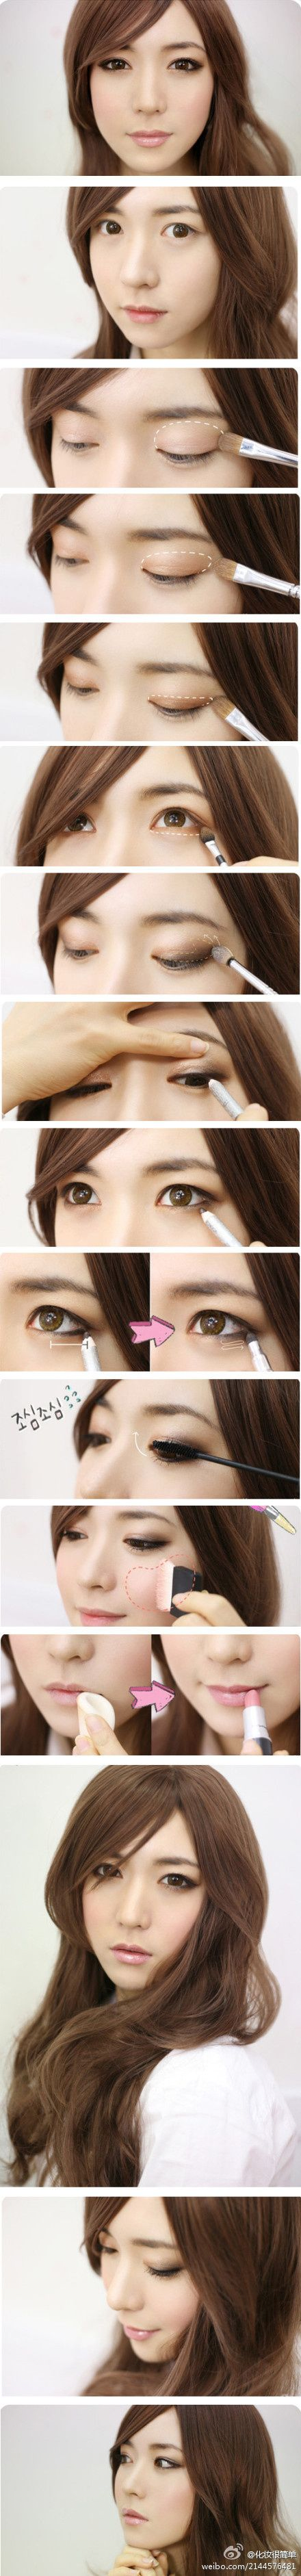 the right way to do asian eye makeup... not what was done to me by my wedding makeup artist.